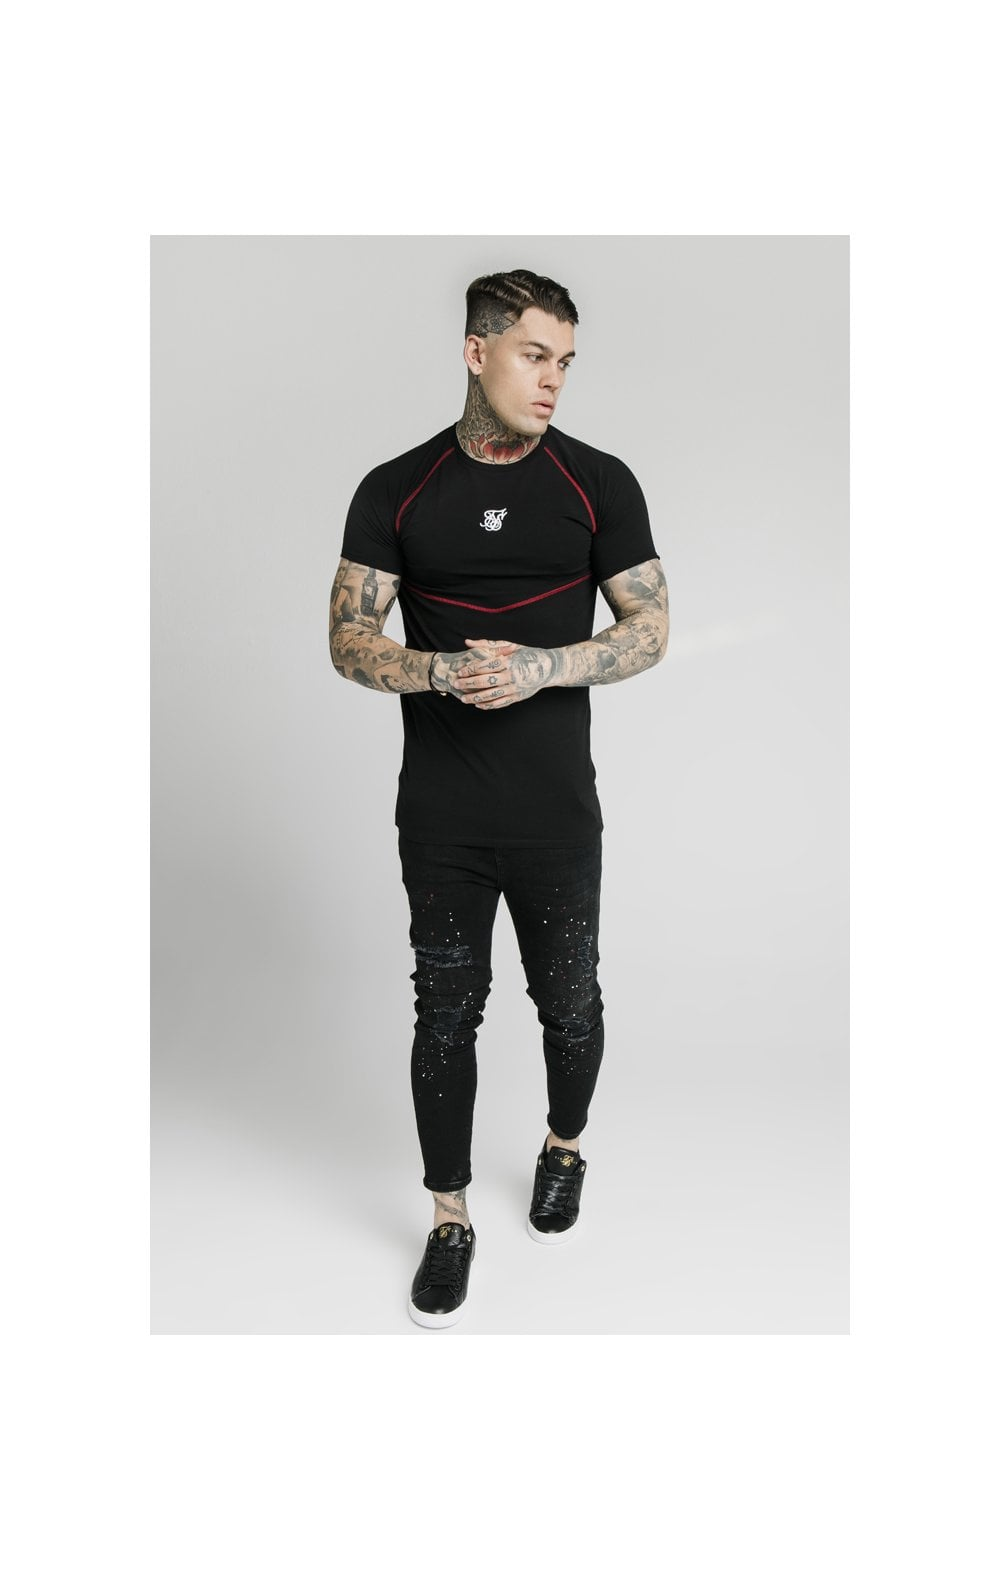 SikSilk Cover Stitch Raglan Gym Tee - Black & Red (4)